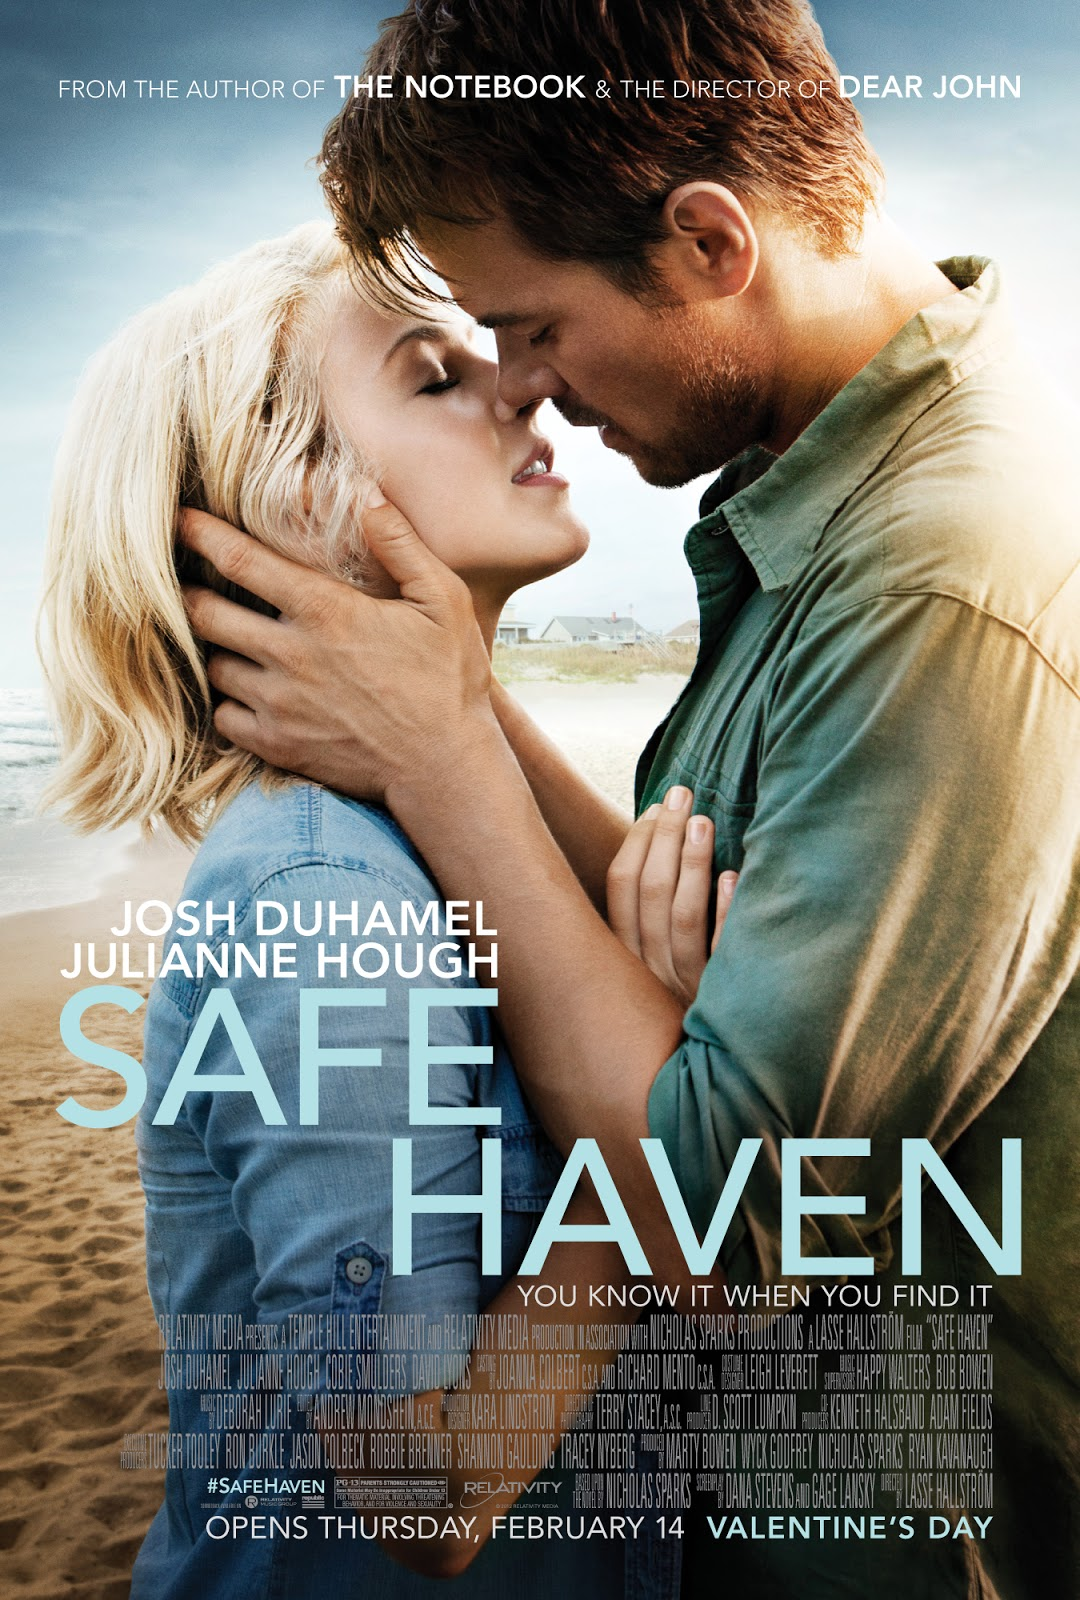 Hes Written A Lot Of Books And I Have Read Them All Safe Haven Is Coming To Theaters Next Week Ive Got Great Giveaway Celebrate Its Release